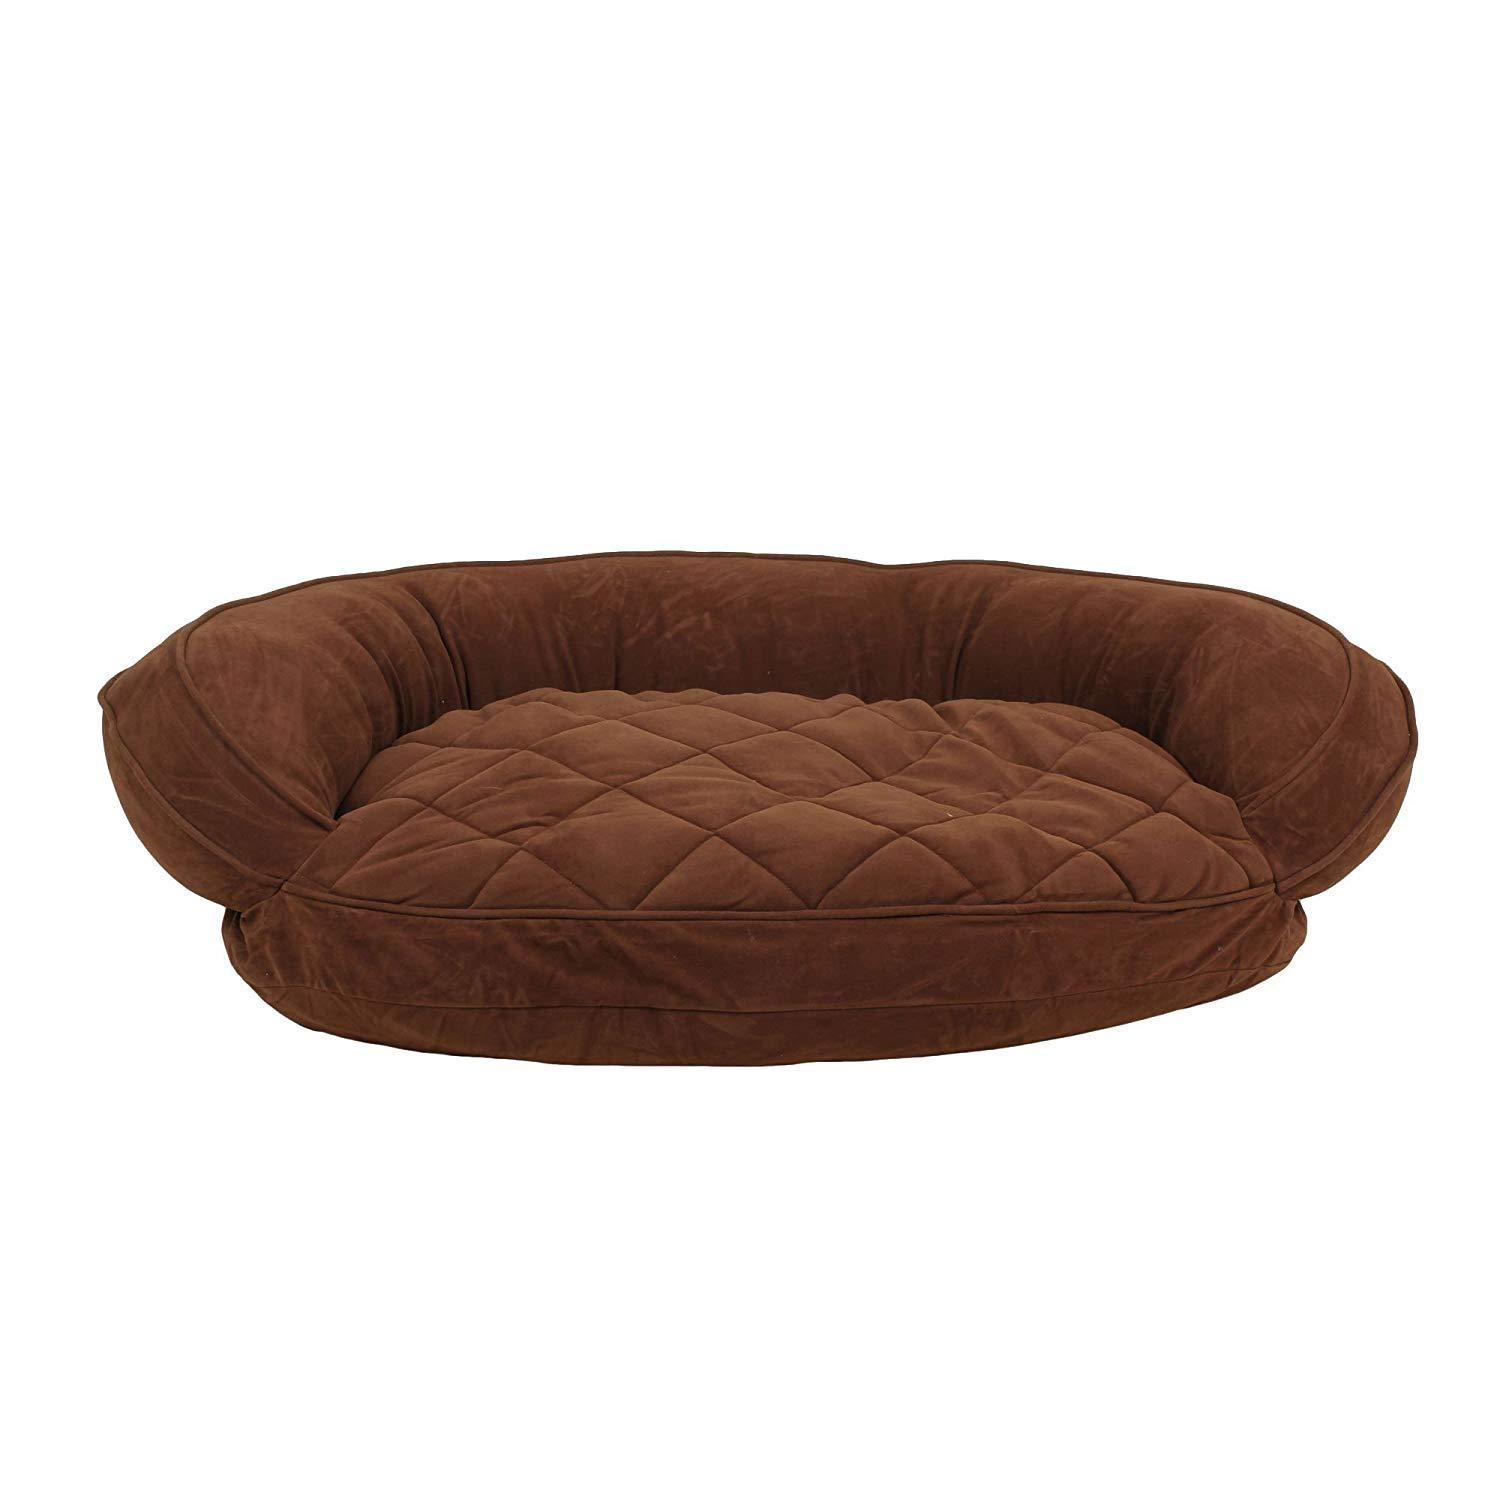 Microfiber Quilted Bolster Dog Bed with Moisture Barrier Protection - Chocolate